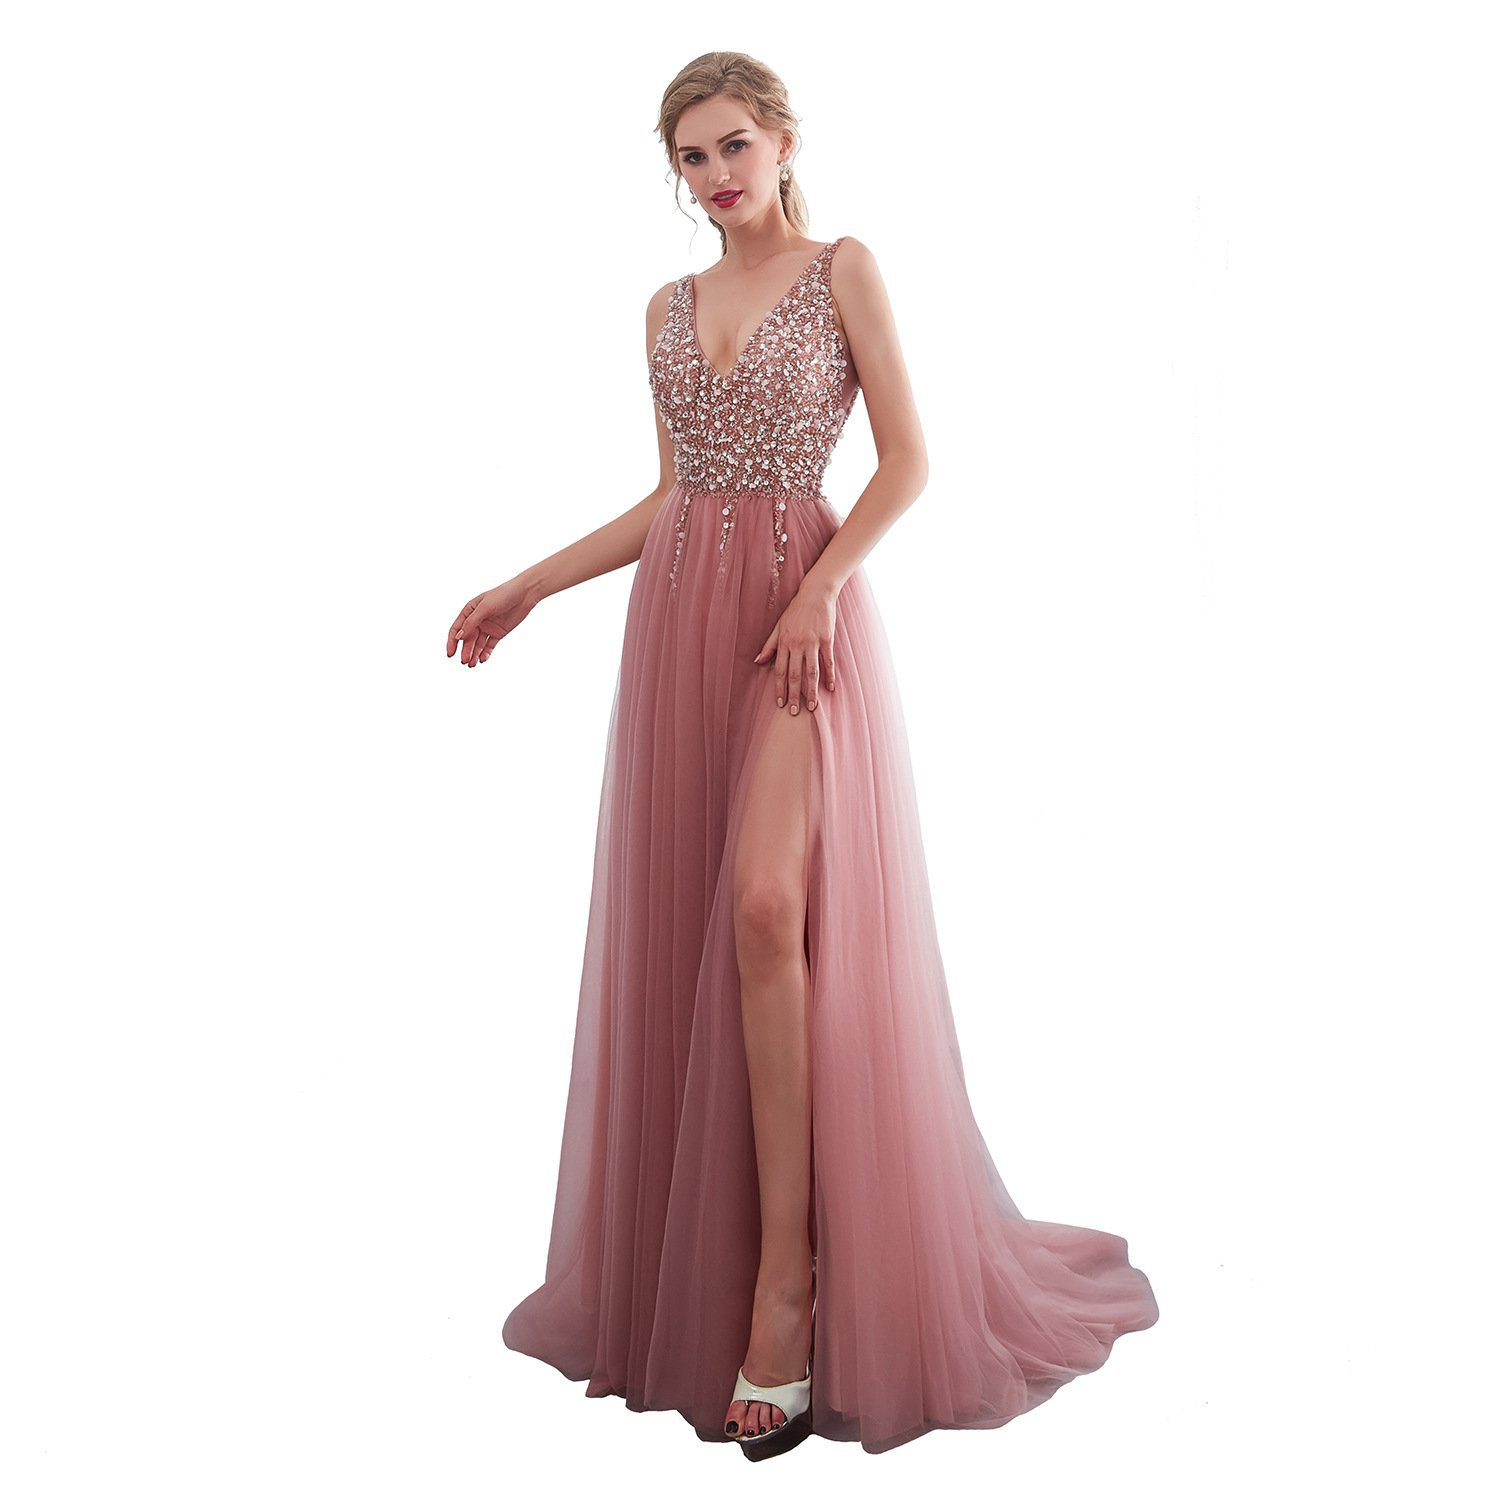 339e738ca iLovewedding Prom Dresses High Slit V Neck Sequins Tulle Long Evening Gowns  at Amazon Women s Clothing store